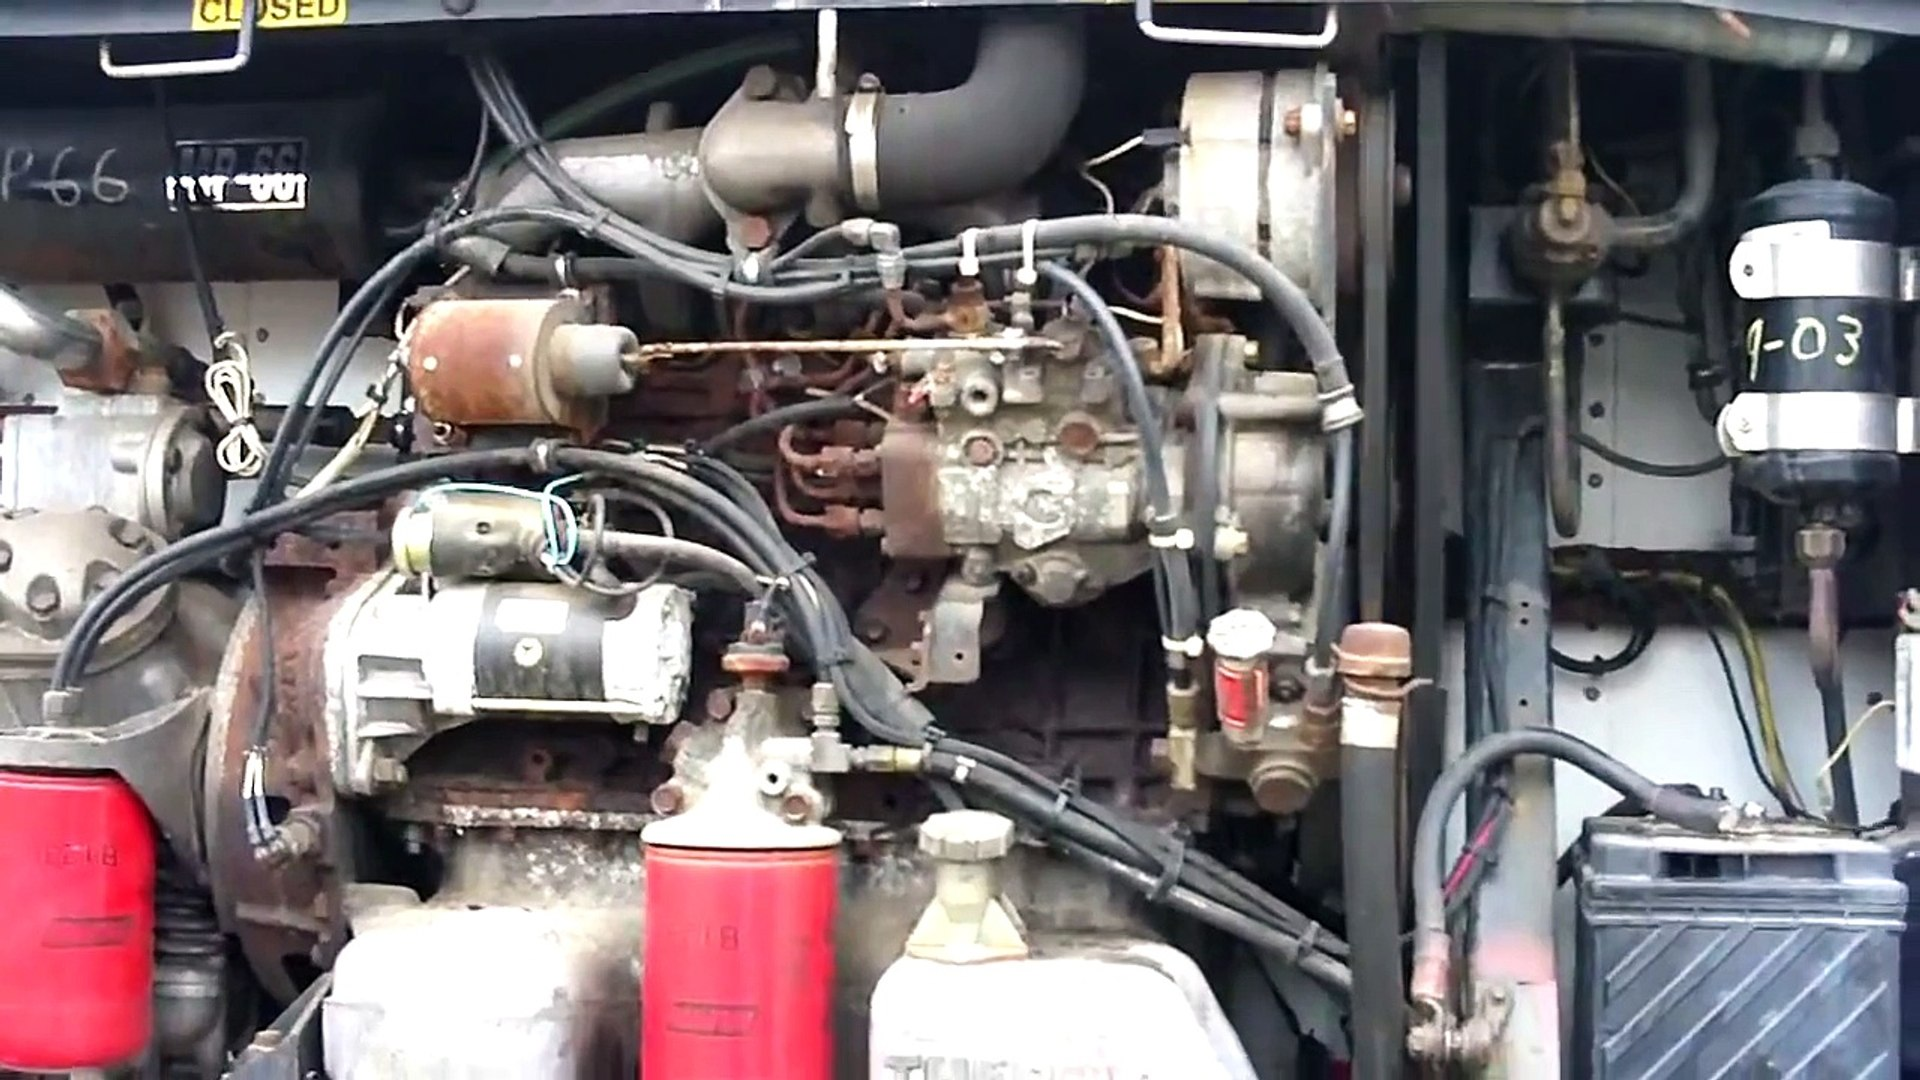 Thermo King / Isuzu D201 Diesel Cold start after 3 years sitting